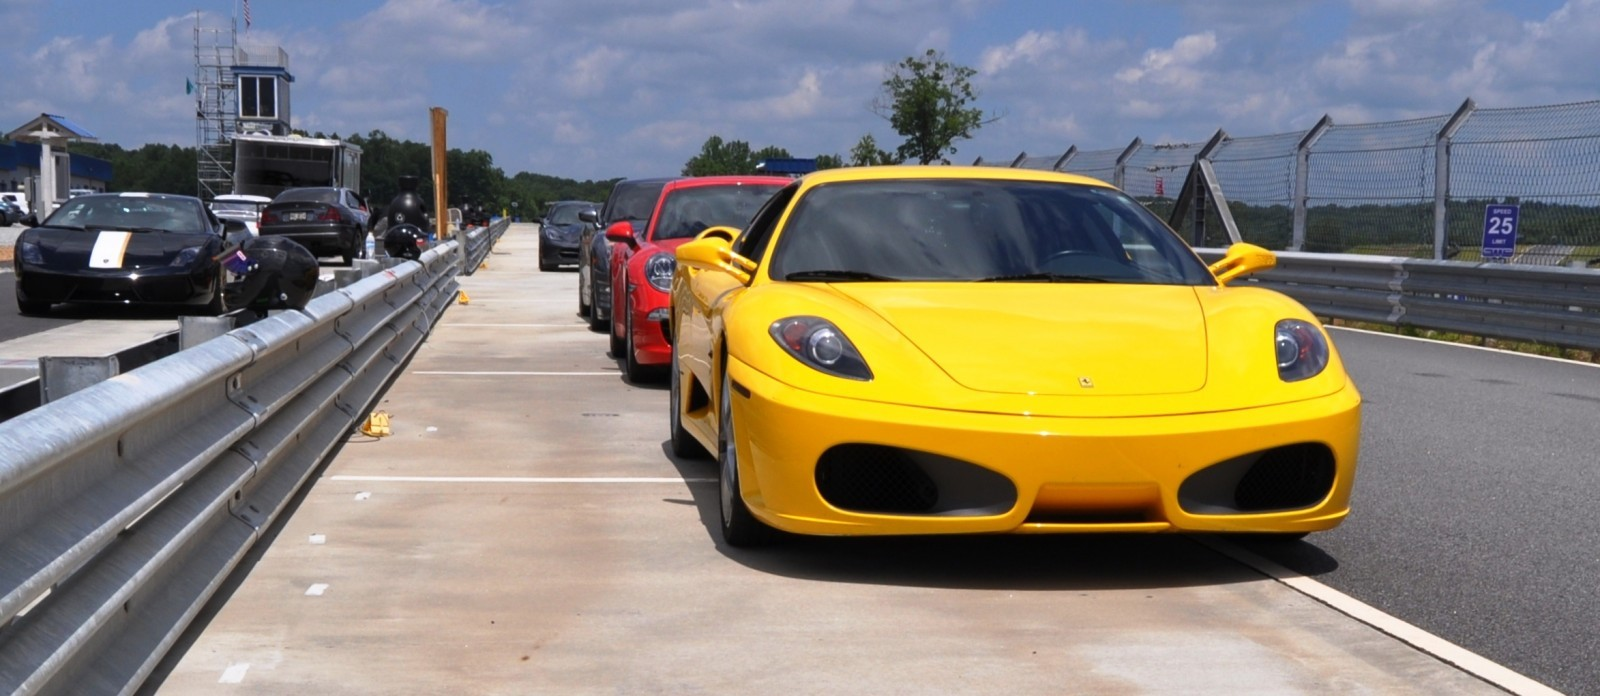 Beating the Supercar Paradox - 2007 Ferrari F430 at Velocity Motorsports Supercar Track Drive 36